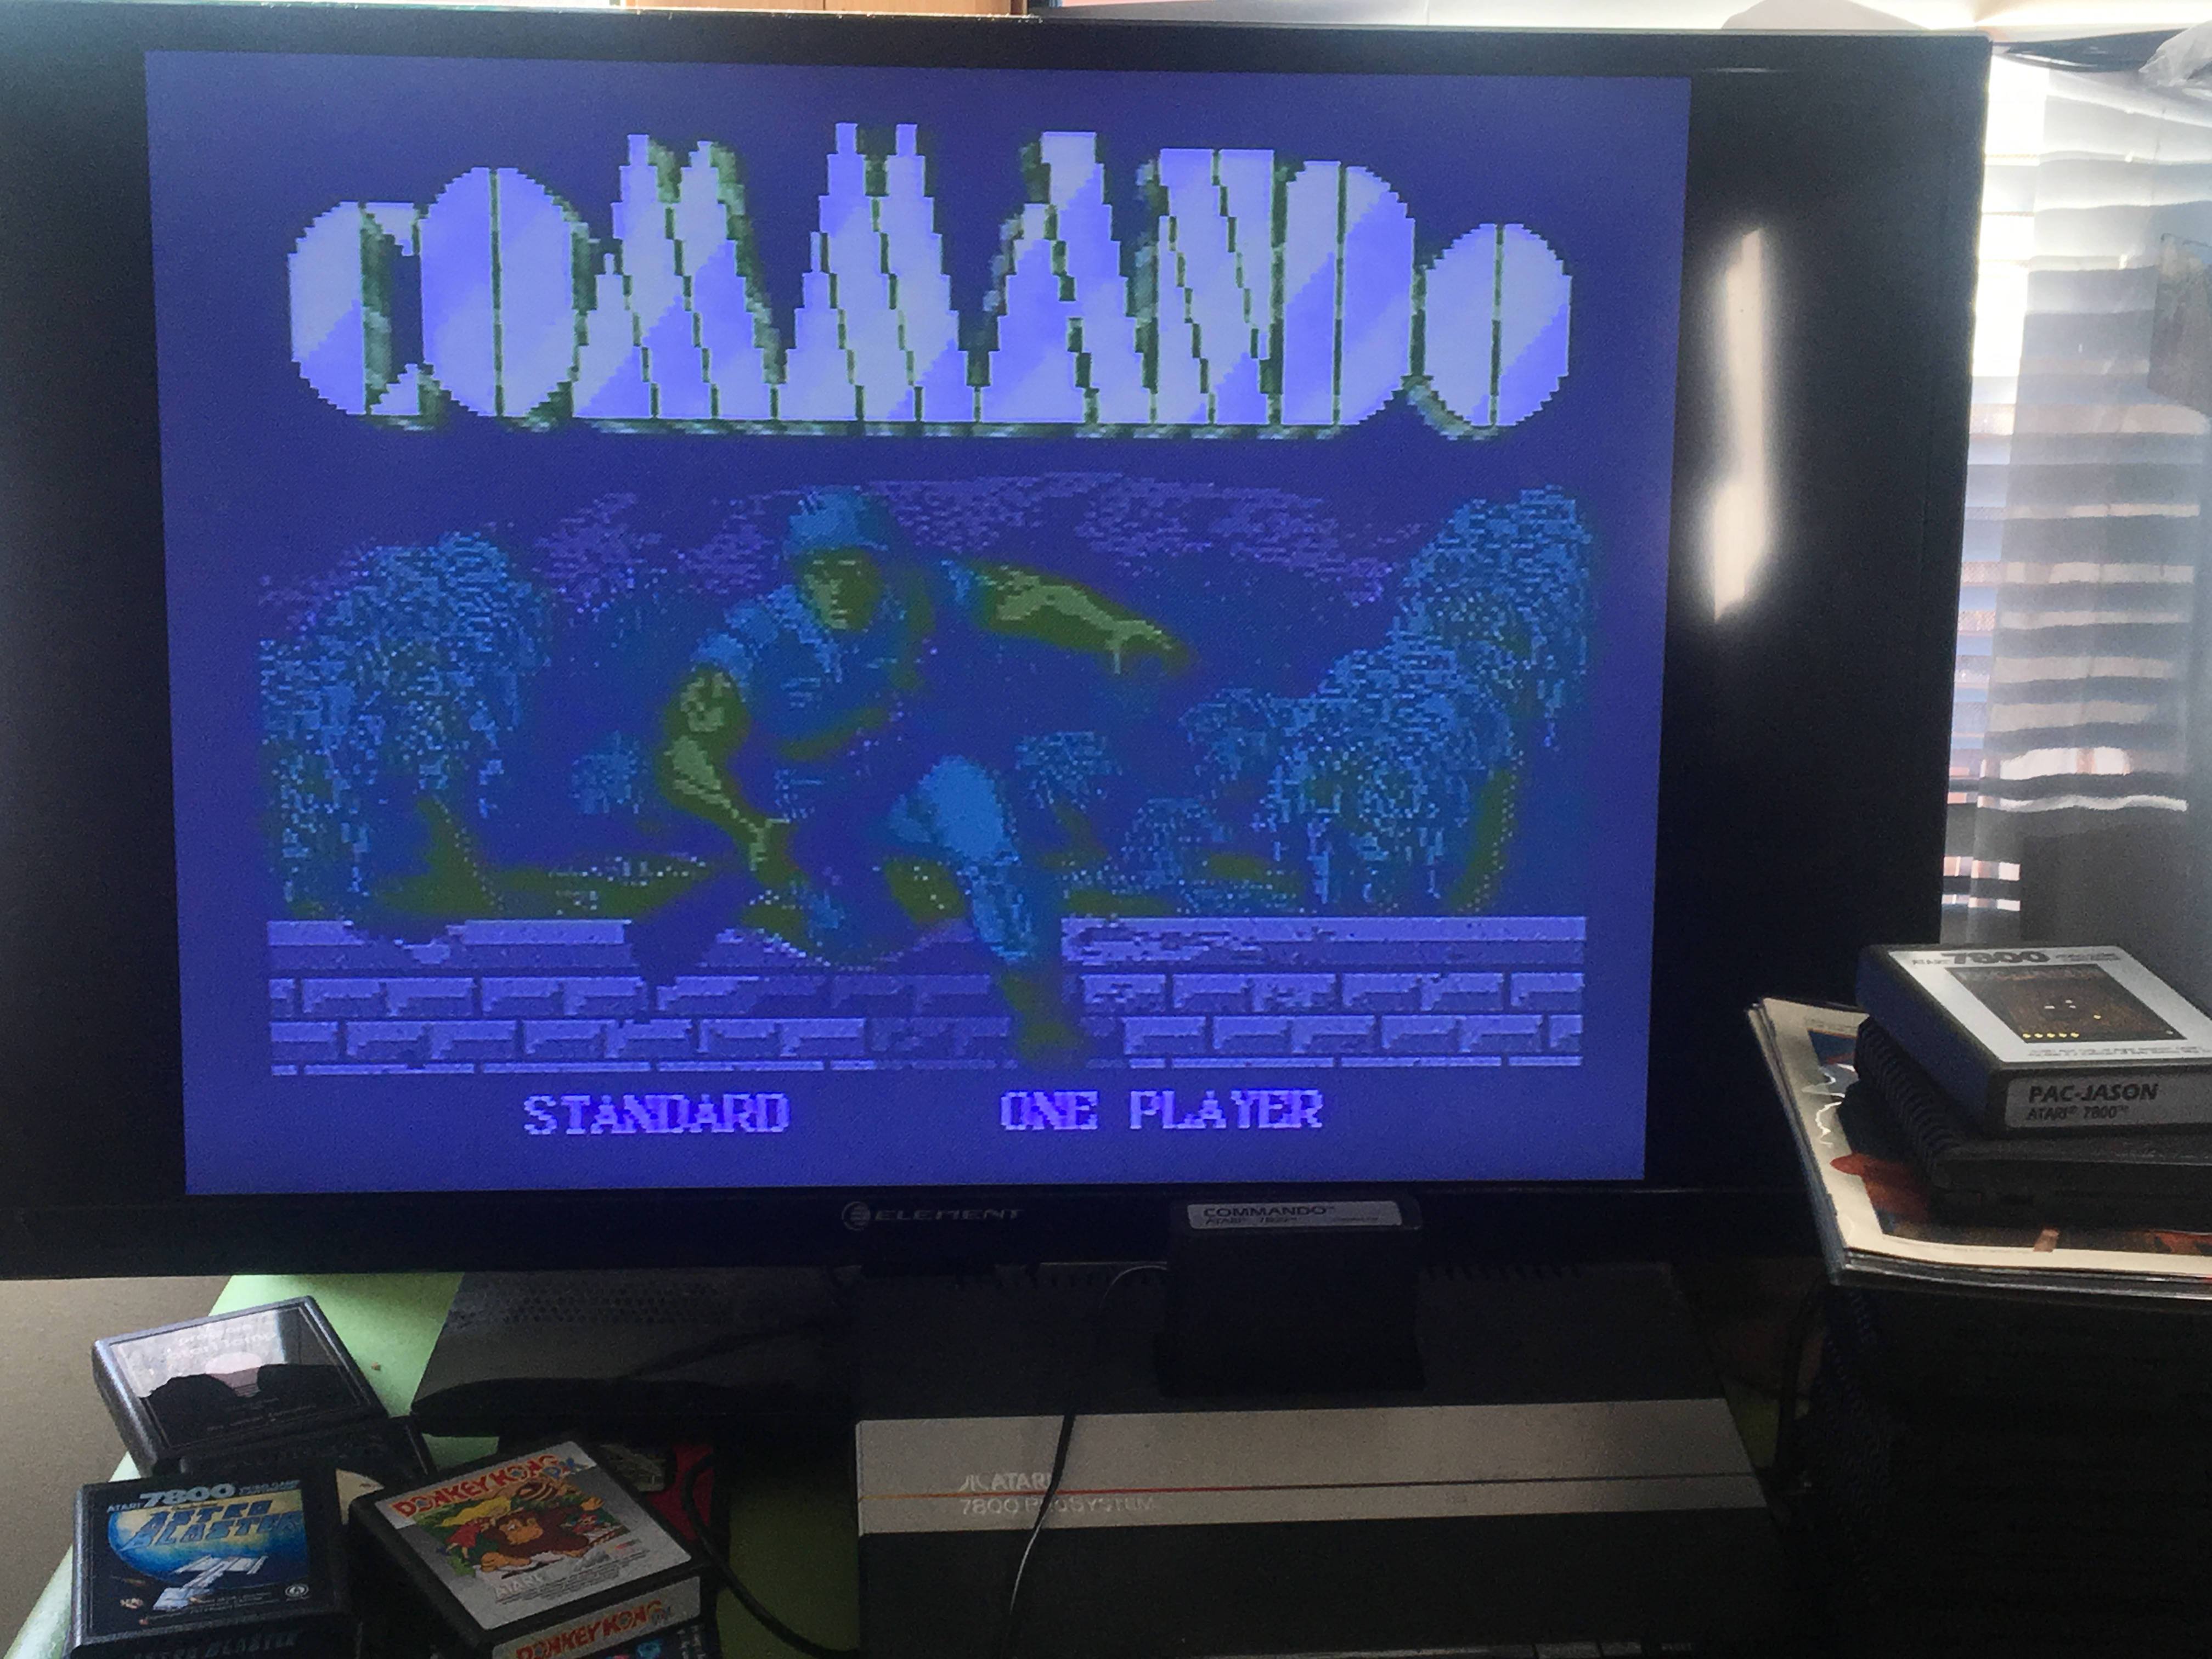 Commando: Standard 284,900 points